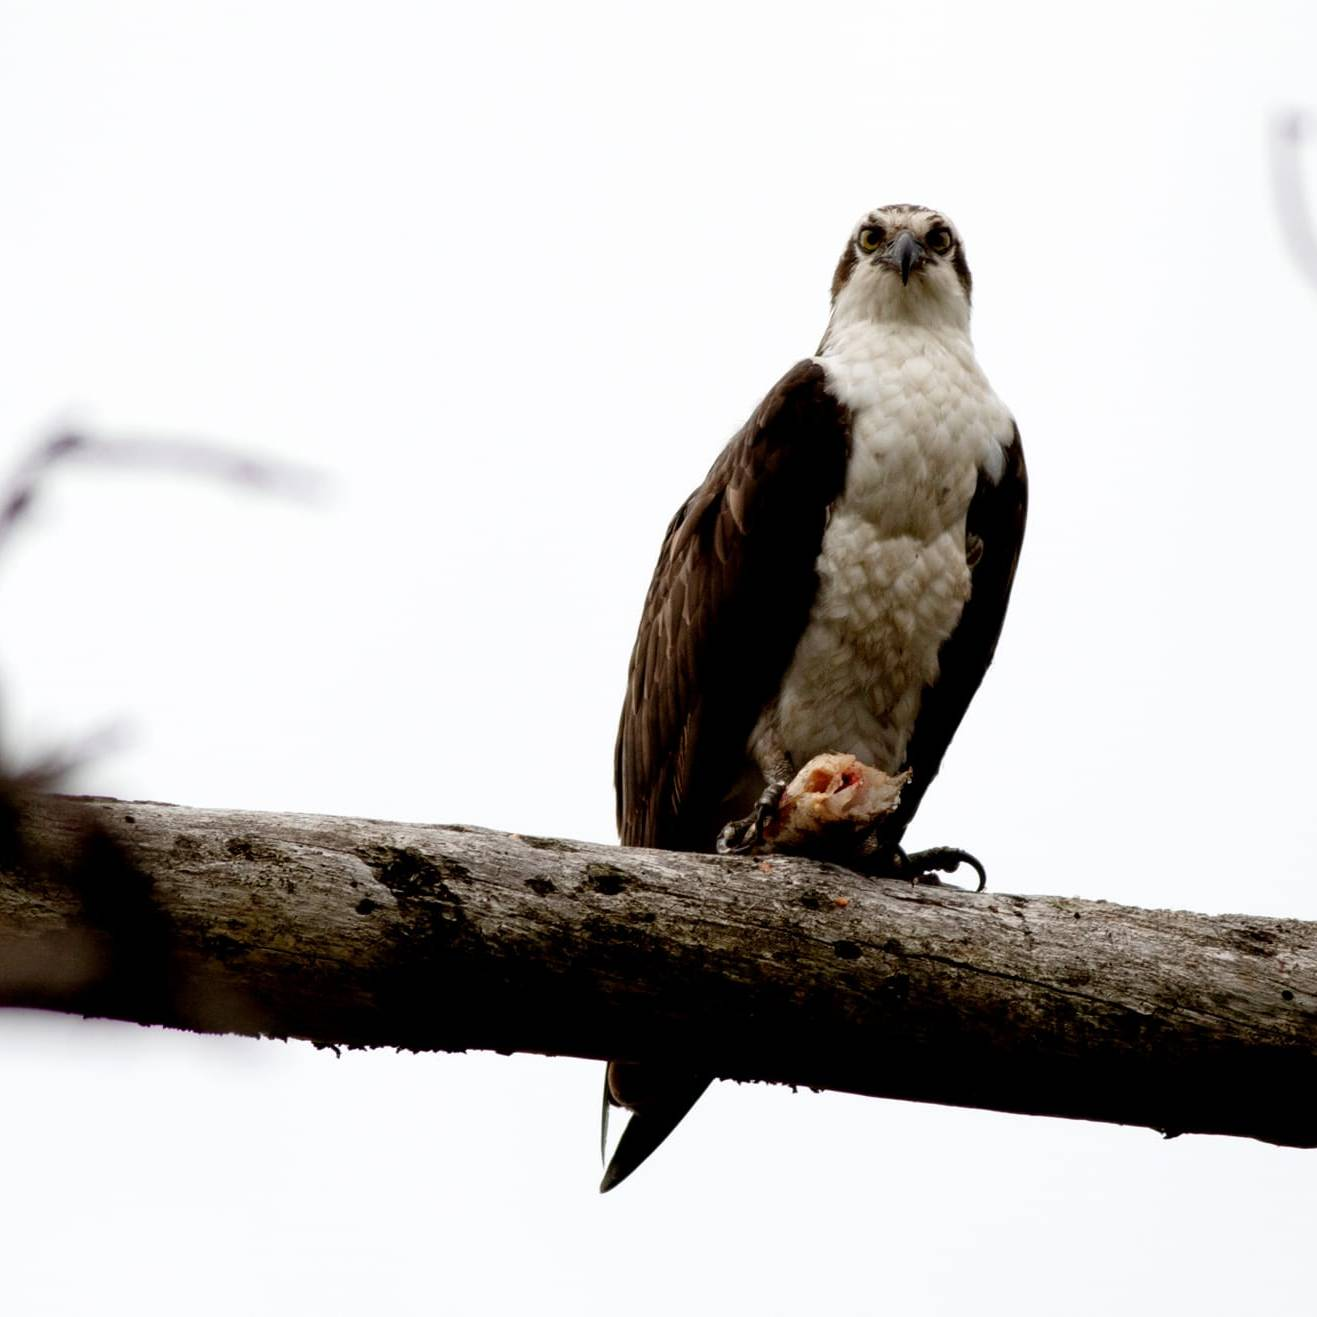 Osprey sitting on a branch with foot on a beaded fish. Osprey is looking straight ahead at the camera.